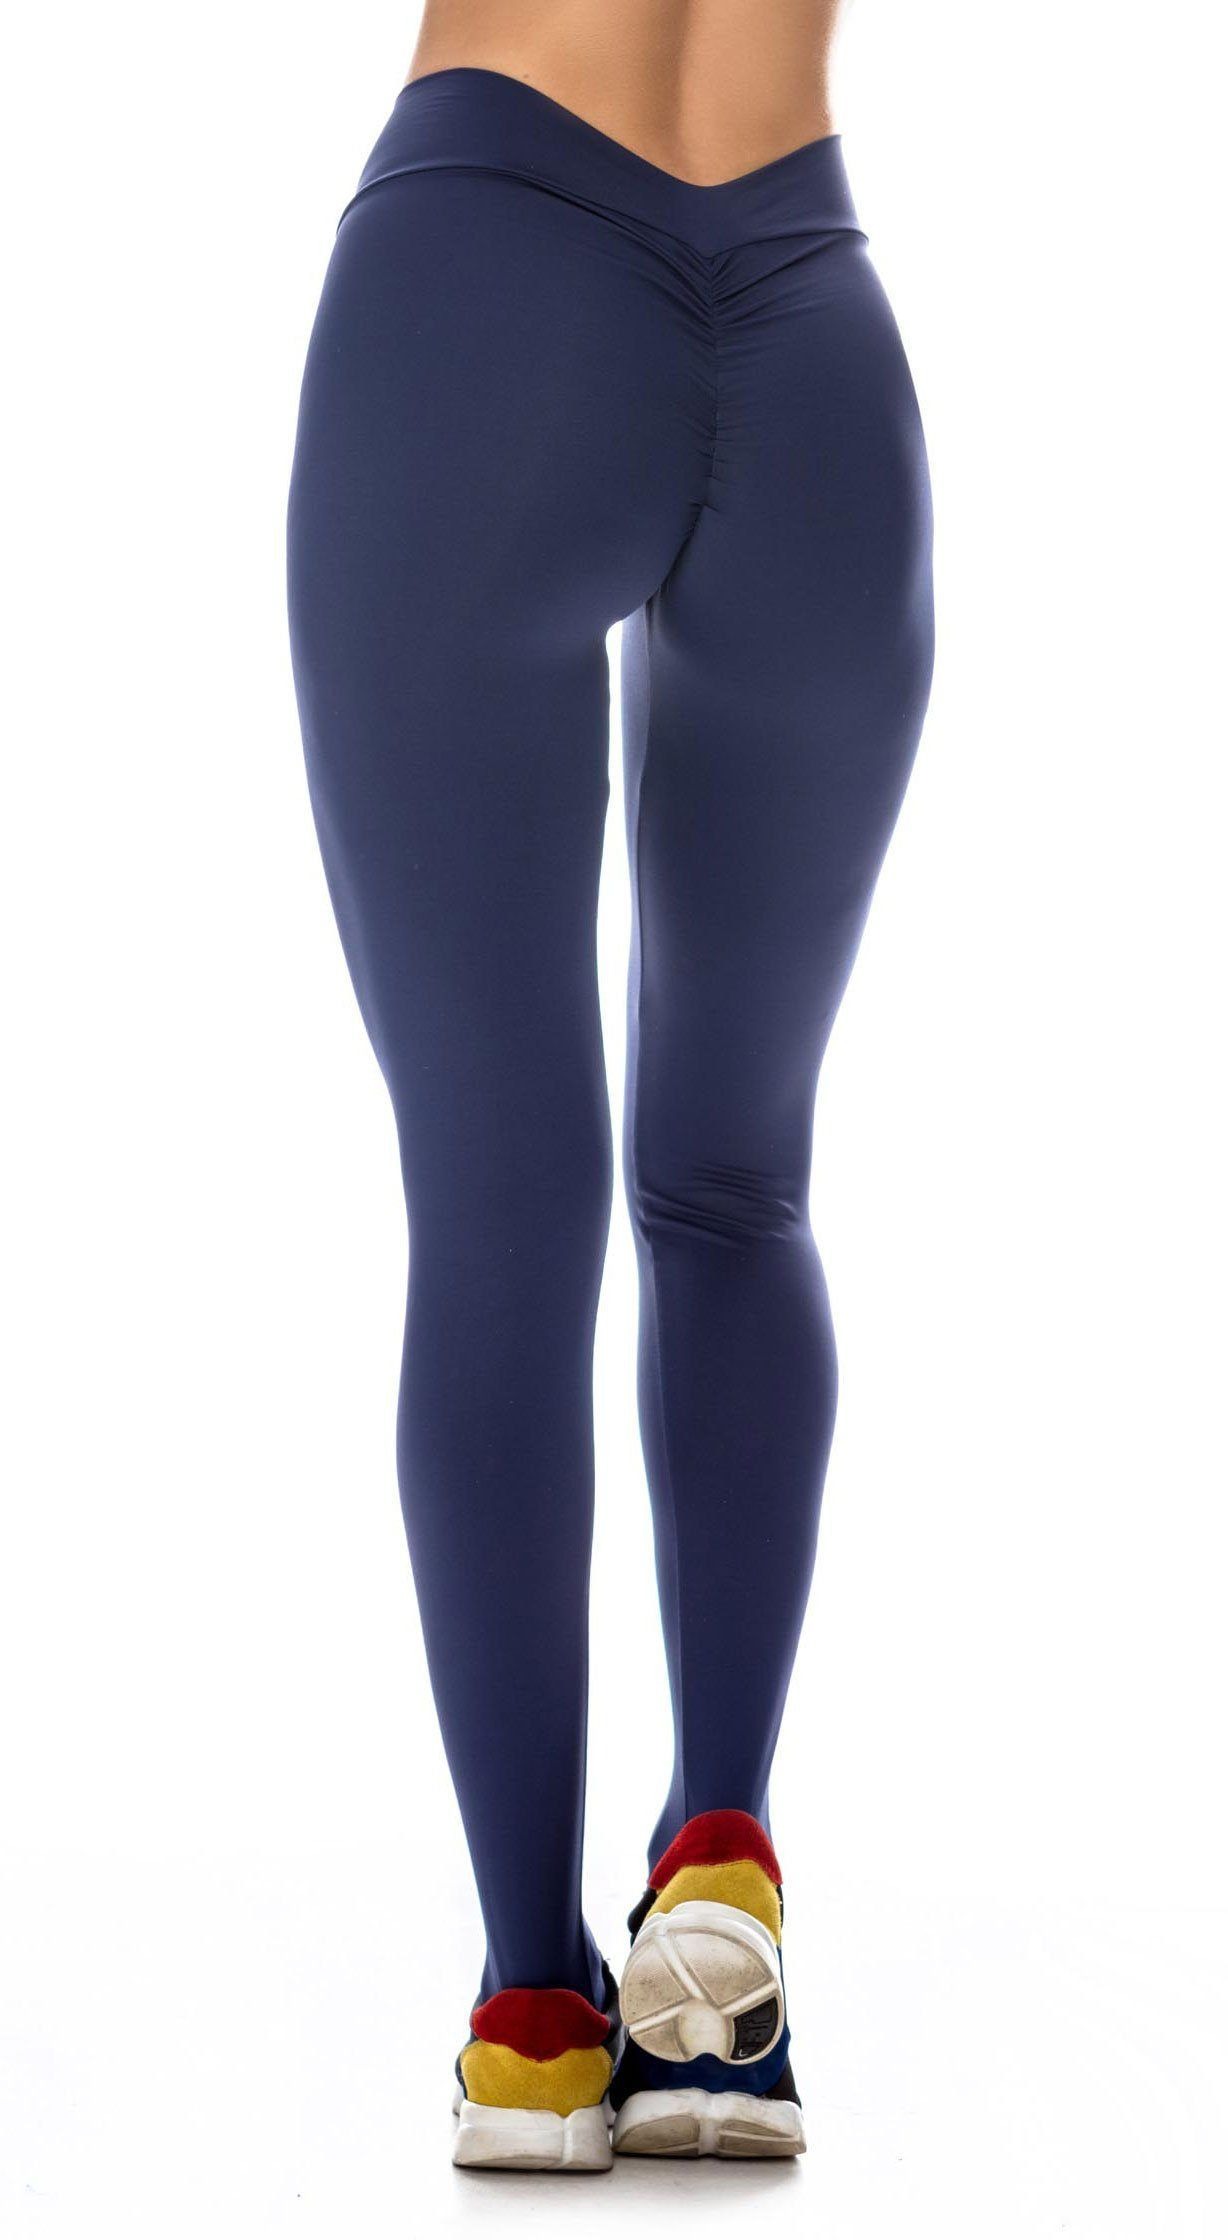 a010b145fe918 Canoan - Brazilian Workout Legging - Scrunch Booty Lift! Compression ...